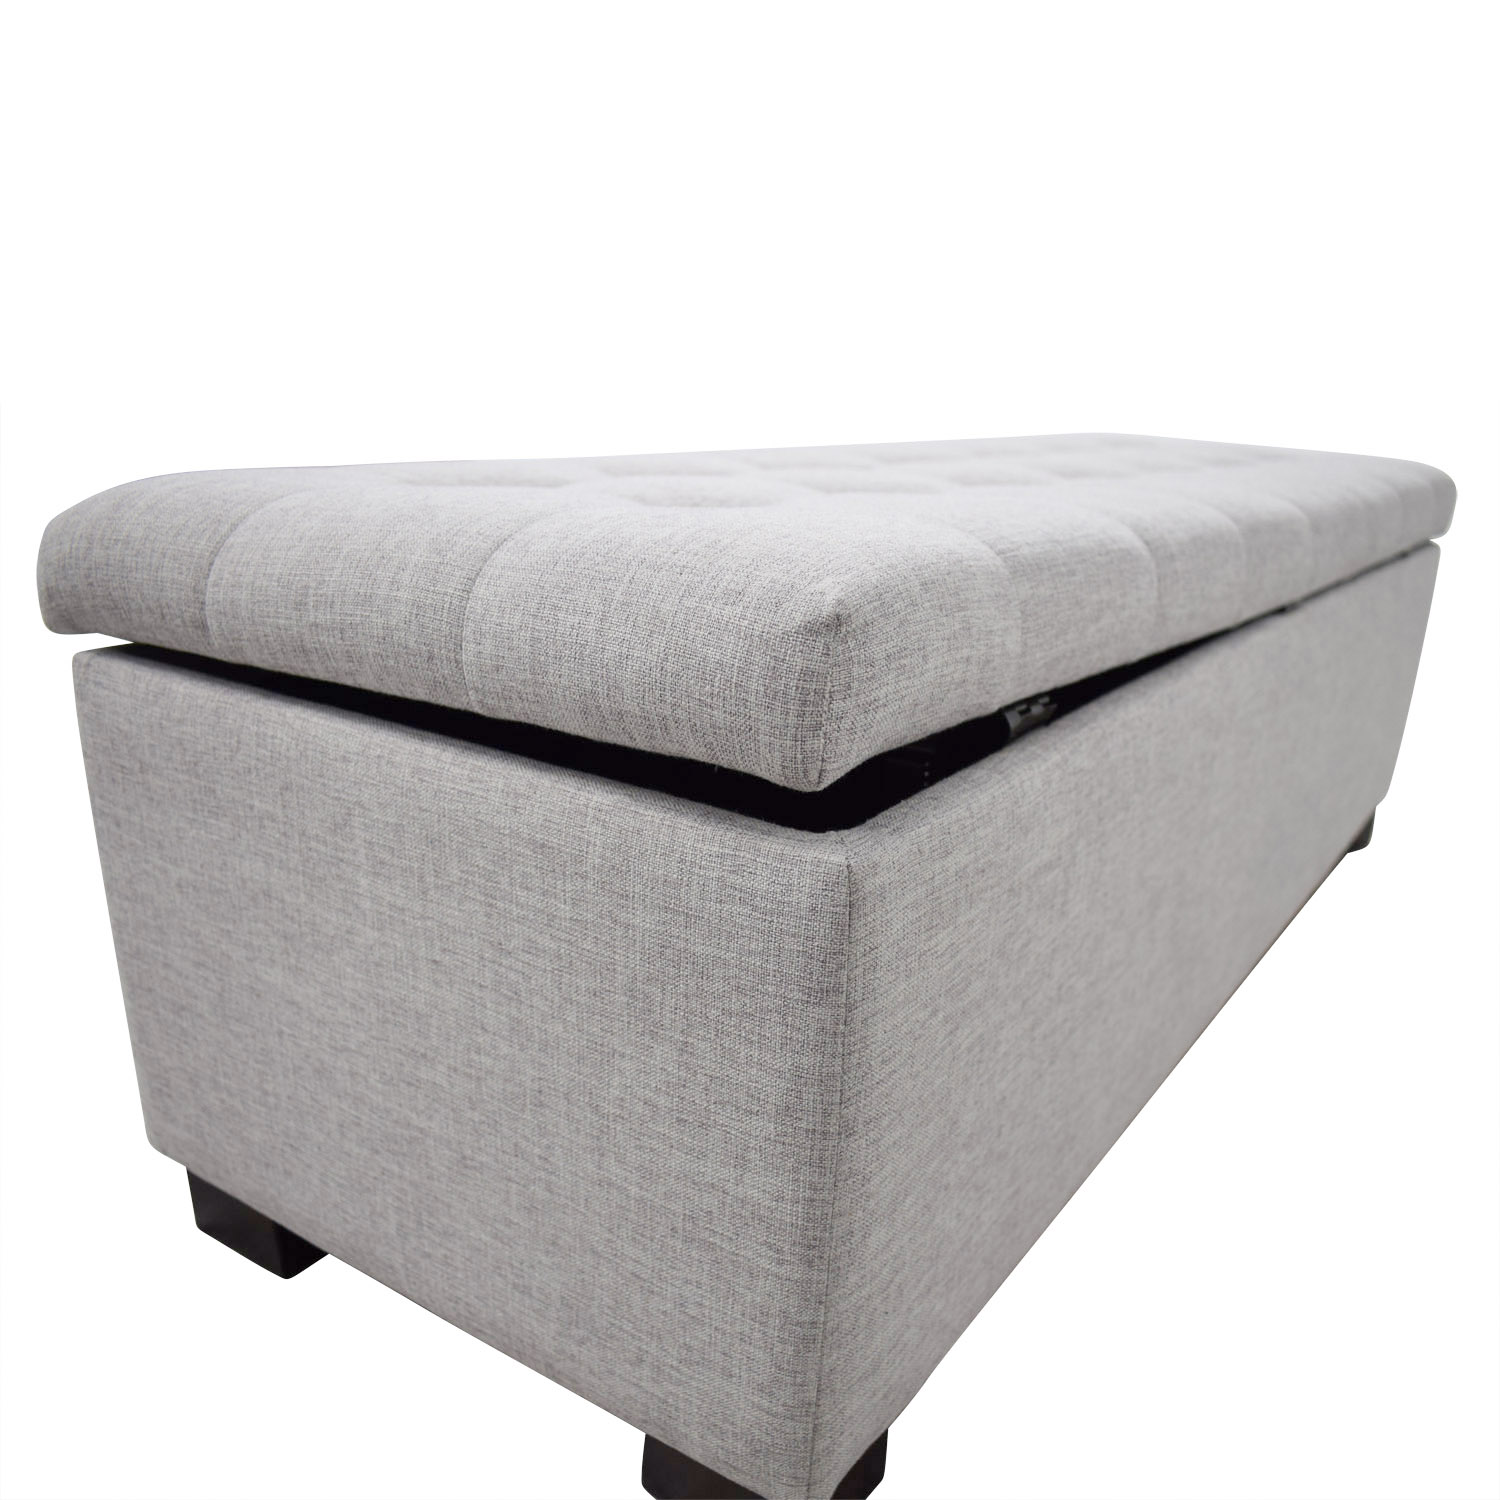 Magnificent 81 Off Wayfair Wayfair Grey Tufted Upholstered Storage Bench Storage Andrewgaddart Wooden Chair Designs For Living Room Andrewgaddartcom